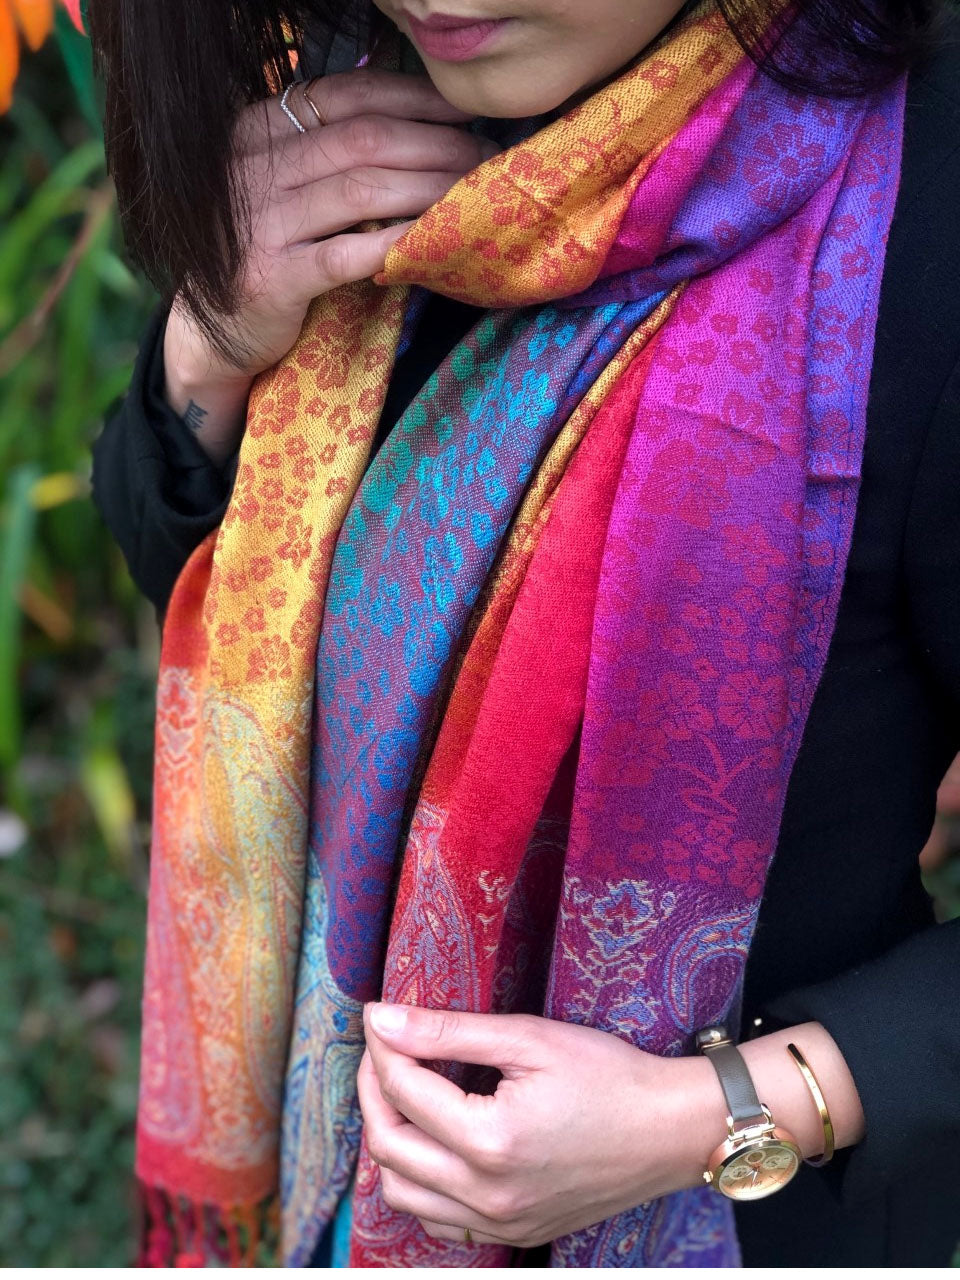 A-SHU LARGE RUSTIC RED RAINBOW FLORAL PAISLEY PASHMINA SHAWL SCARF - A-SHU.CO.UK